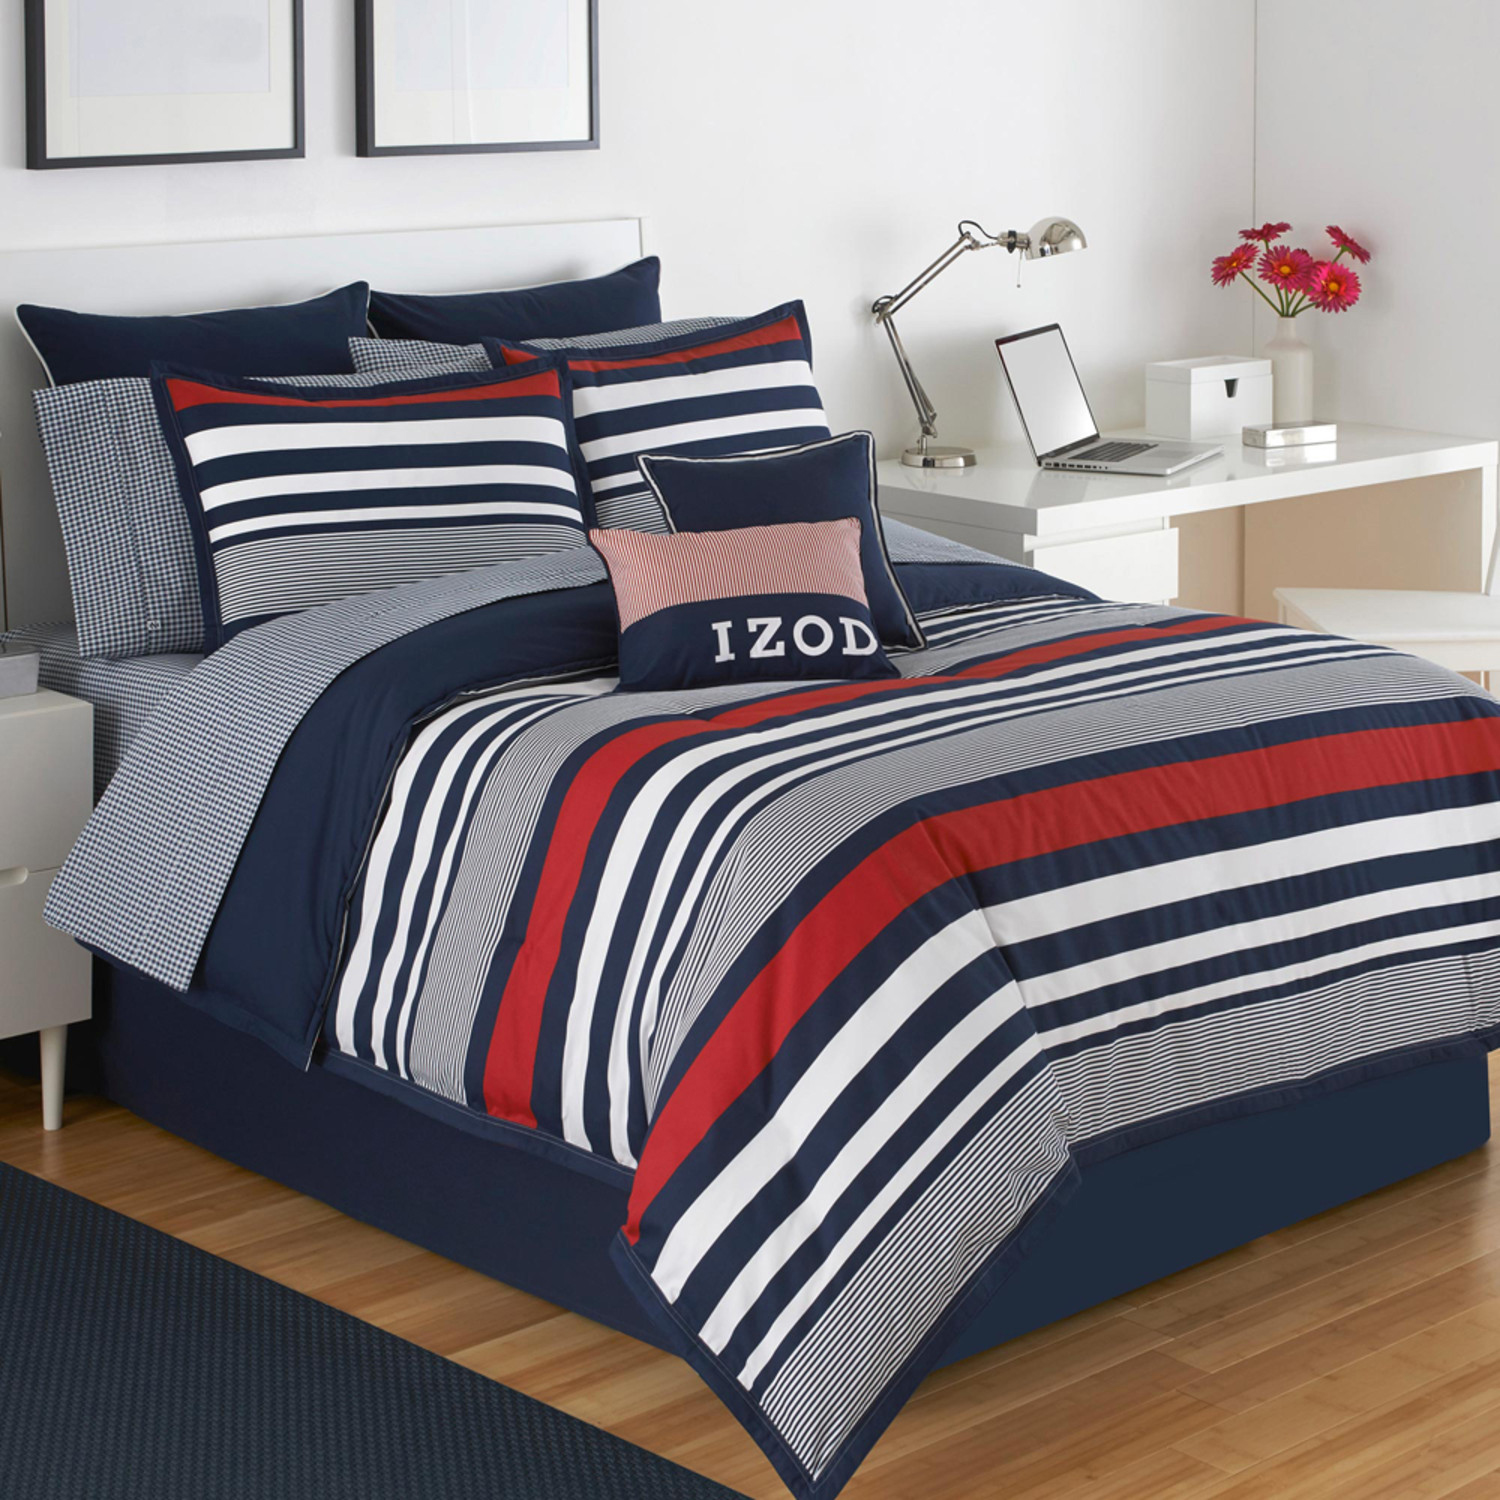 Varsity Stripe By Izod Bedding Beddingsuperstore Com